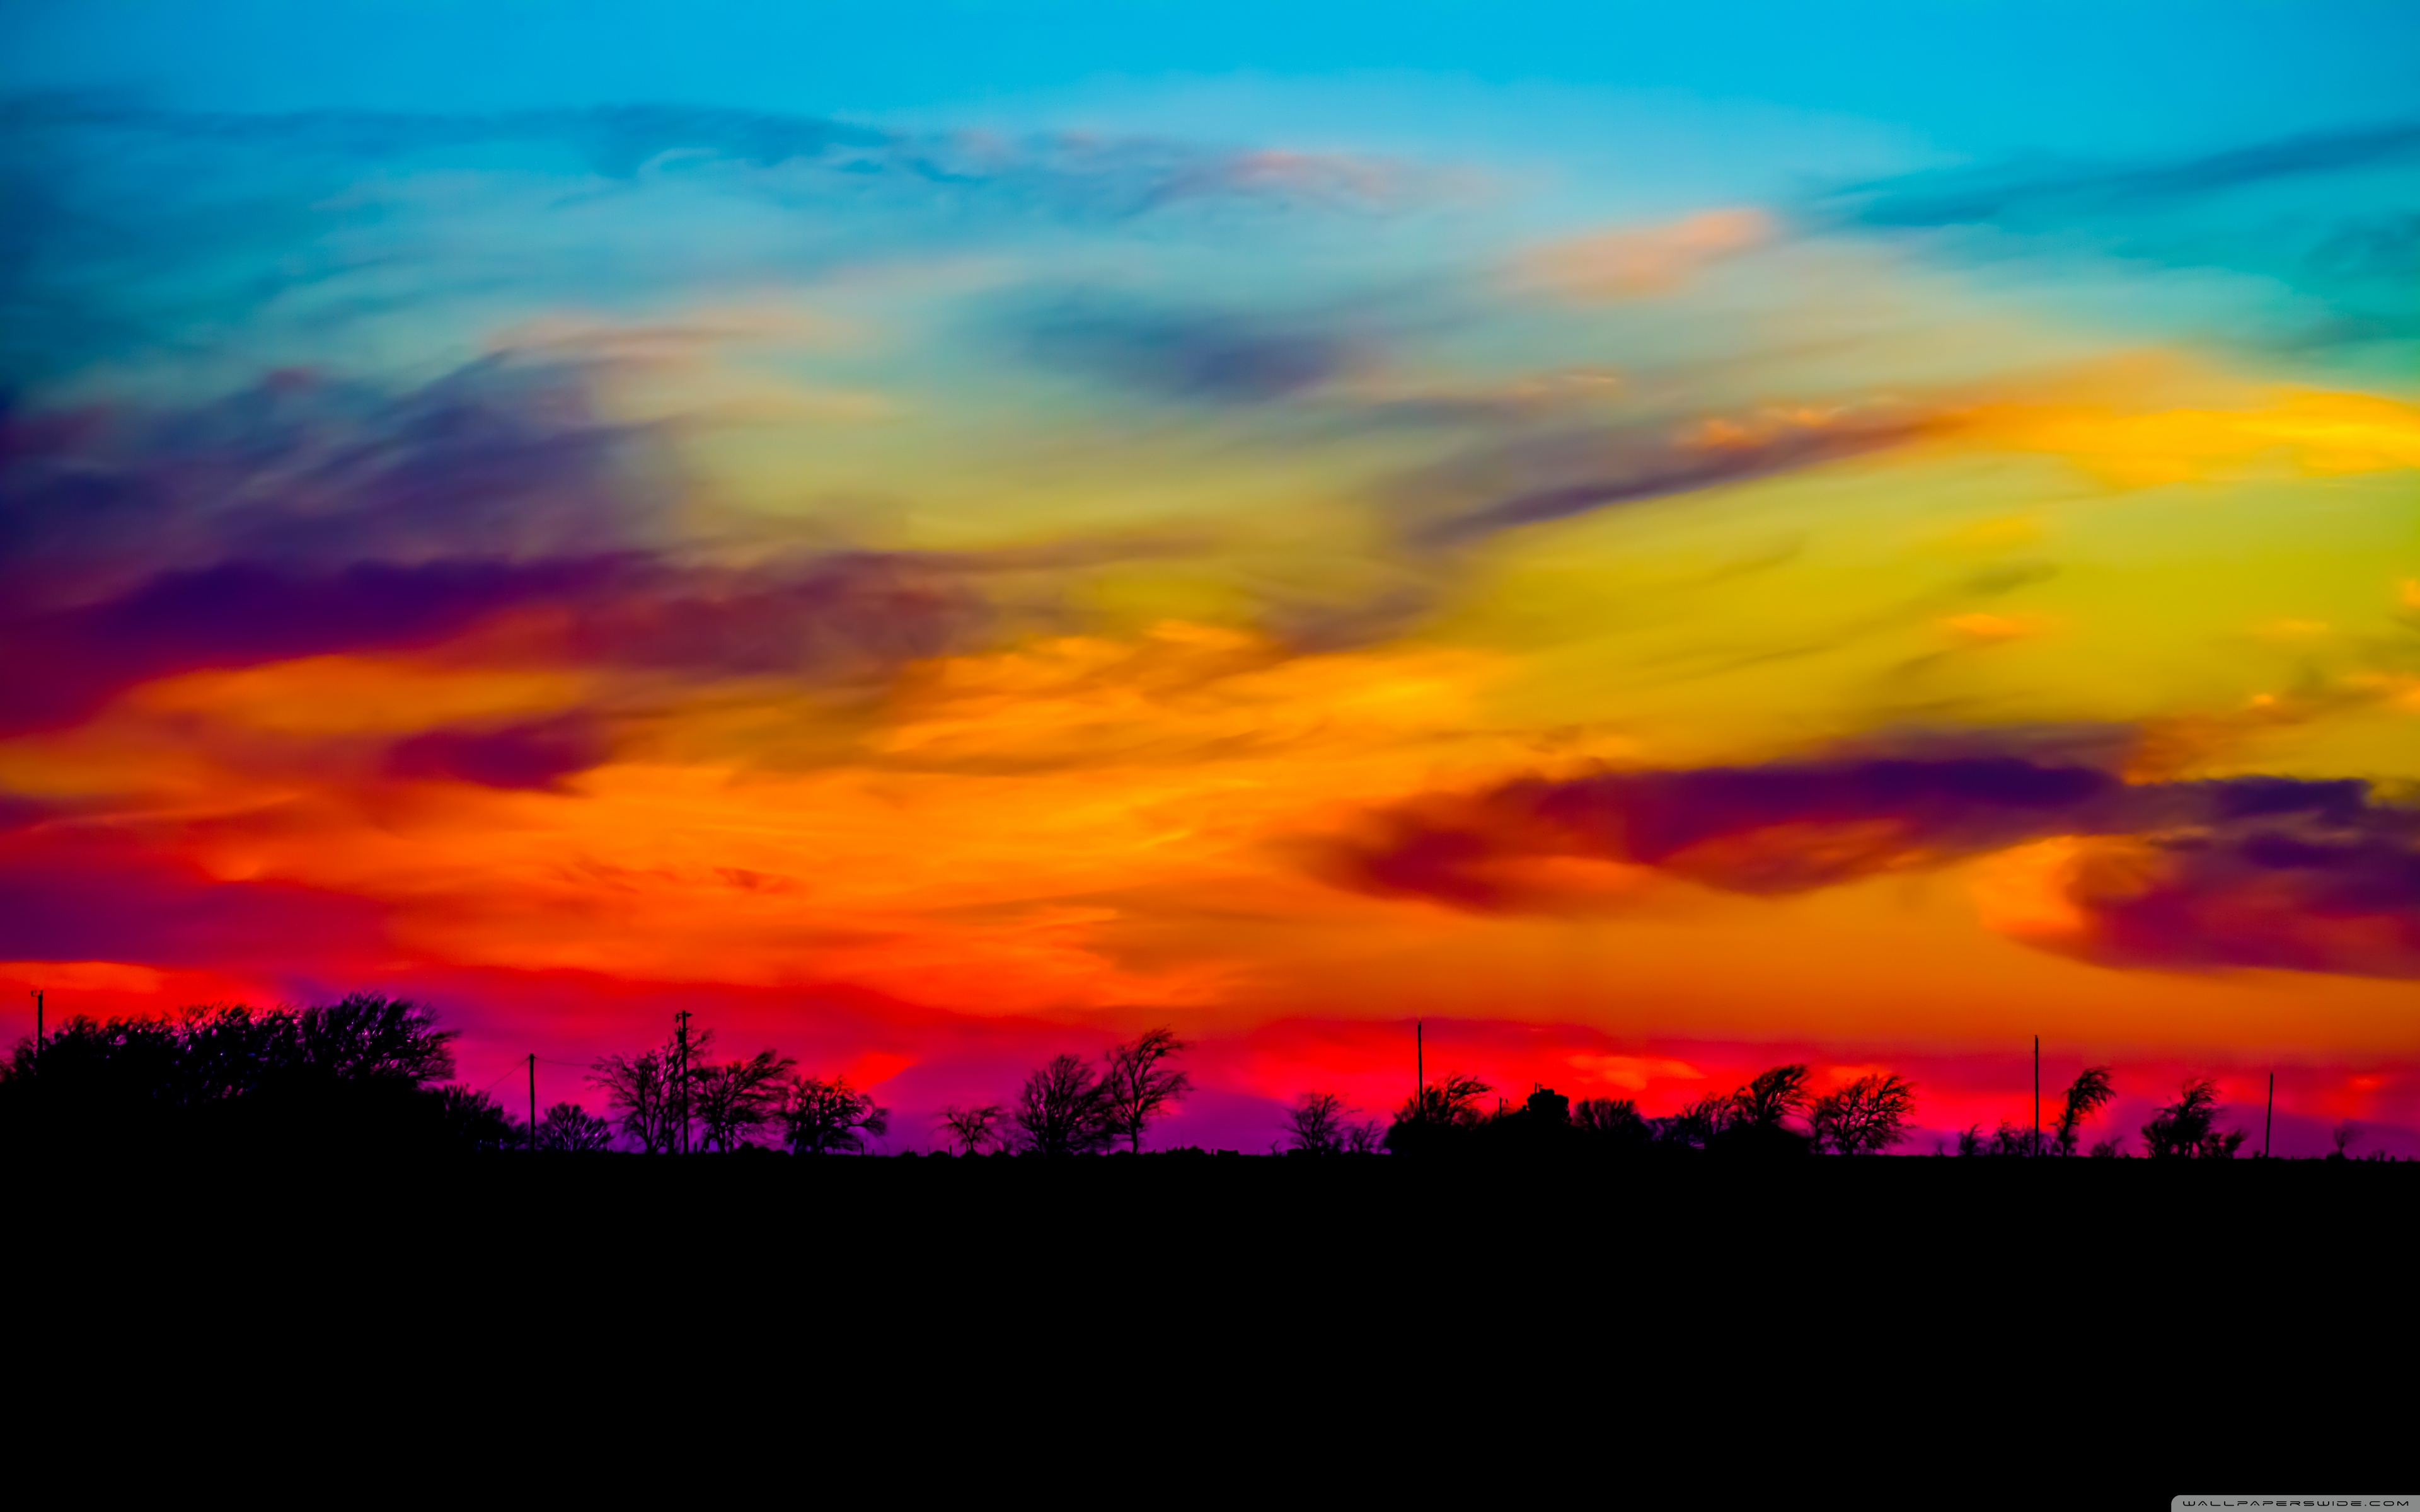 colorful sky wallpaper,sky,afterglow,red sky at morning,sunset,nature